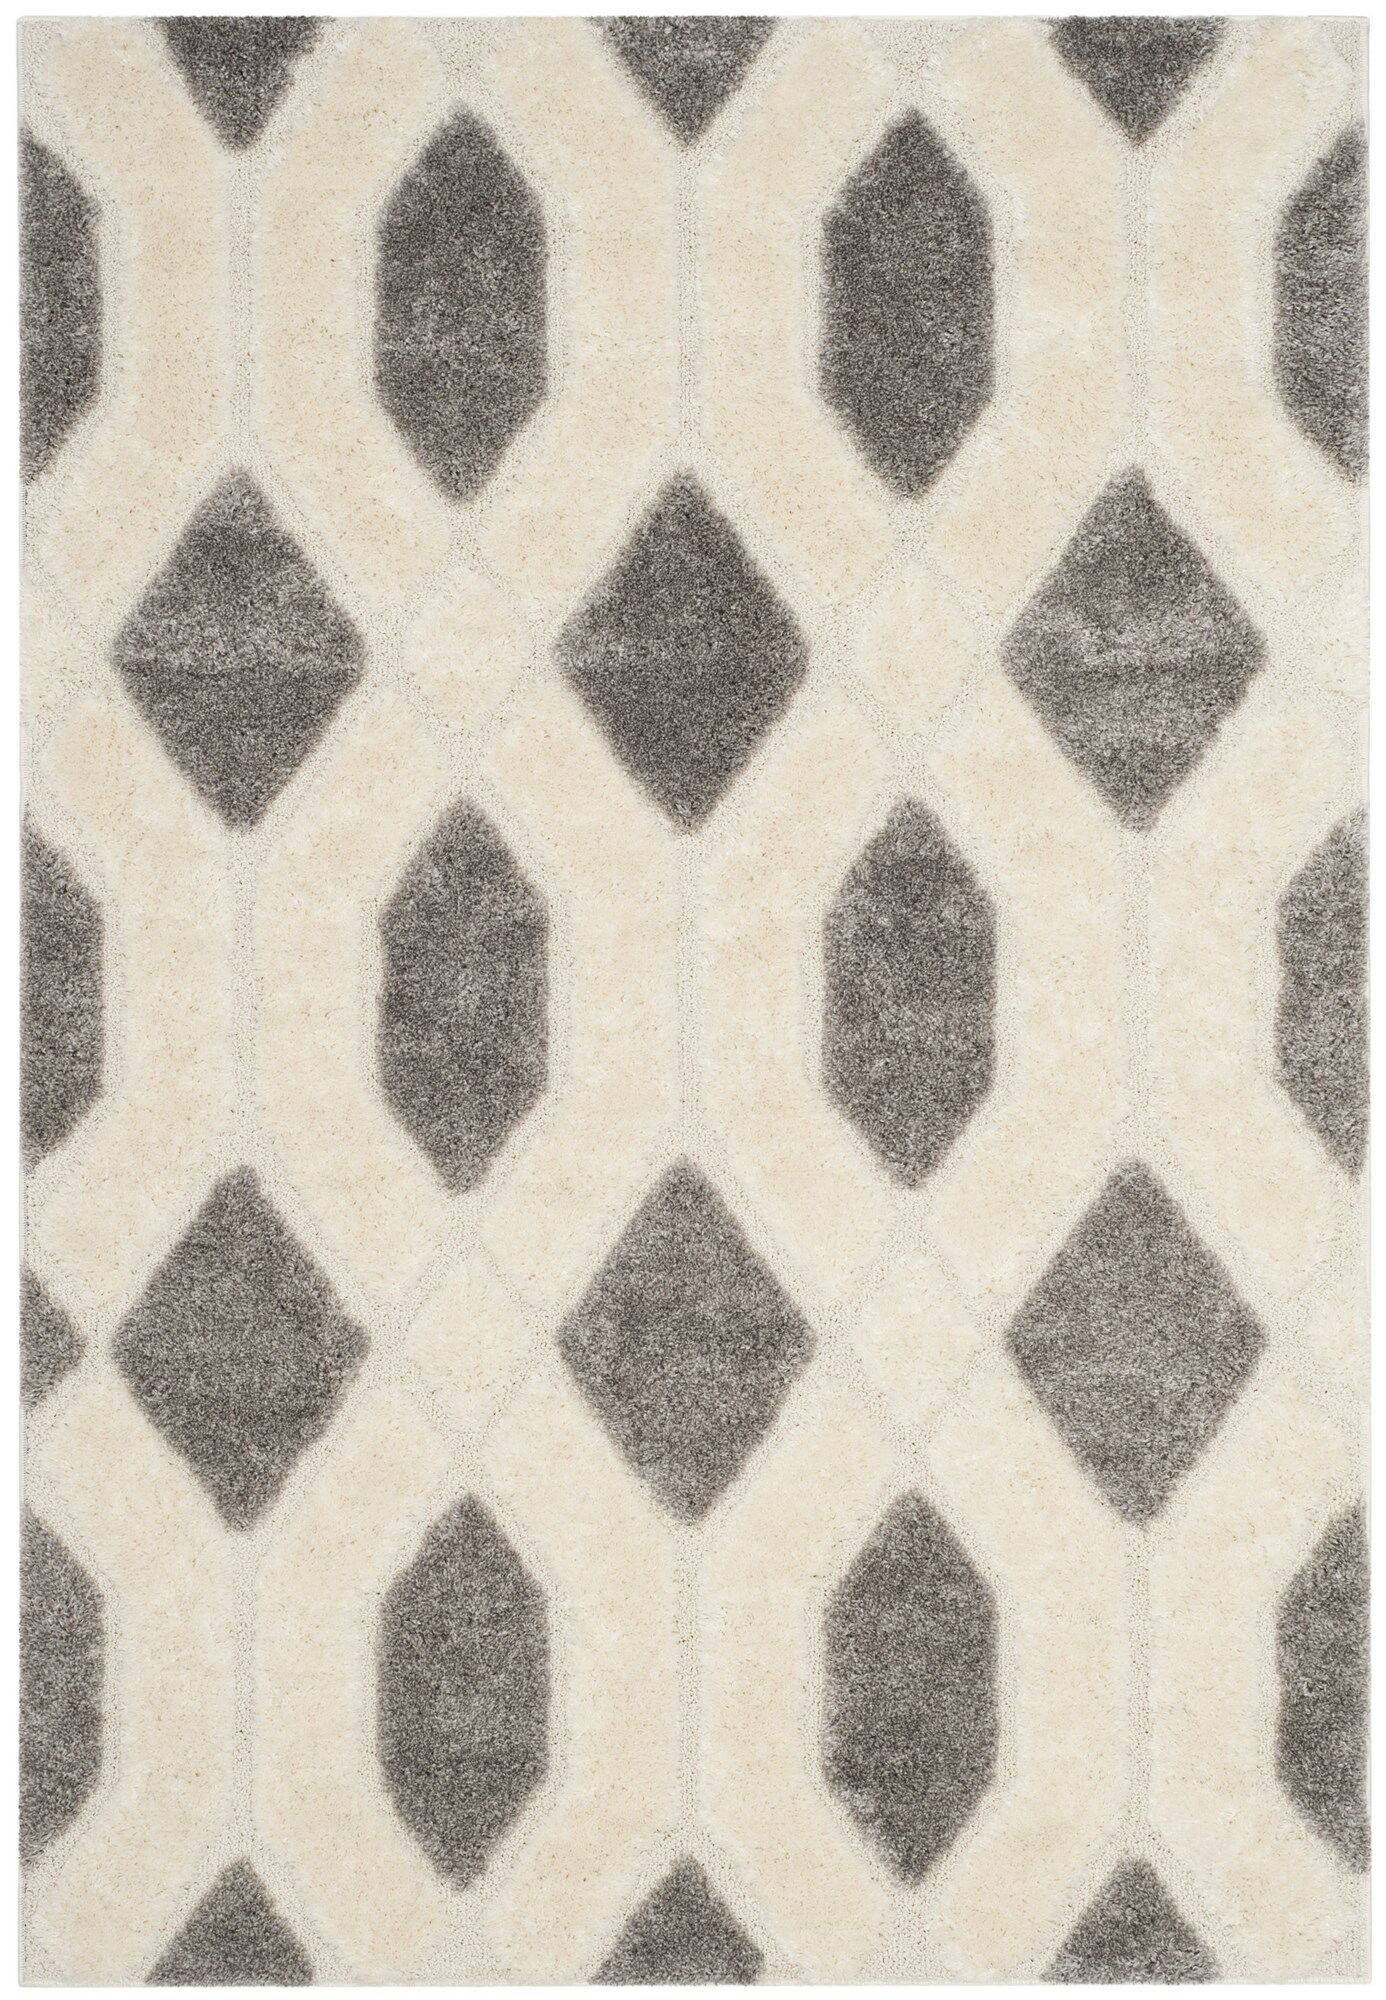 Archway Gray Area Rug Rug Size: Rectangle 8' x 10'